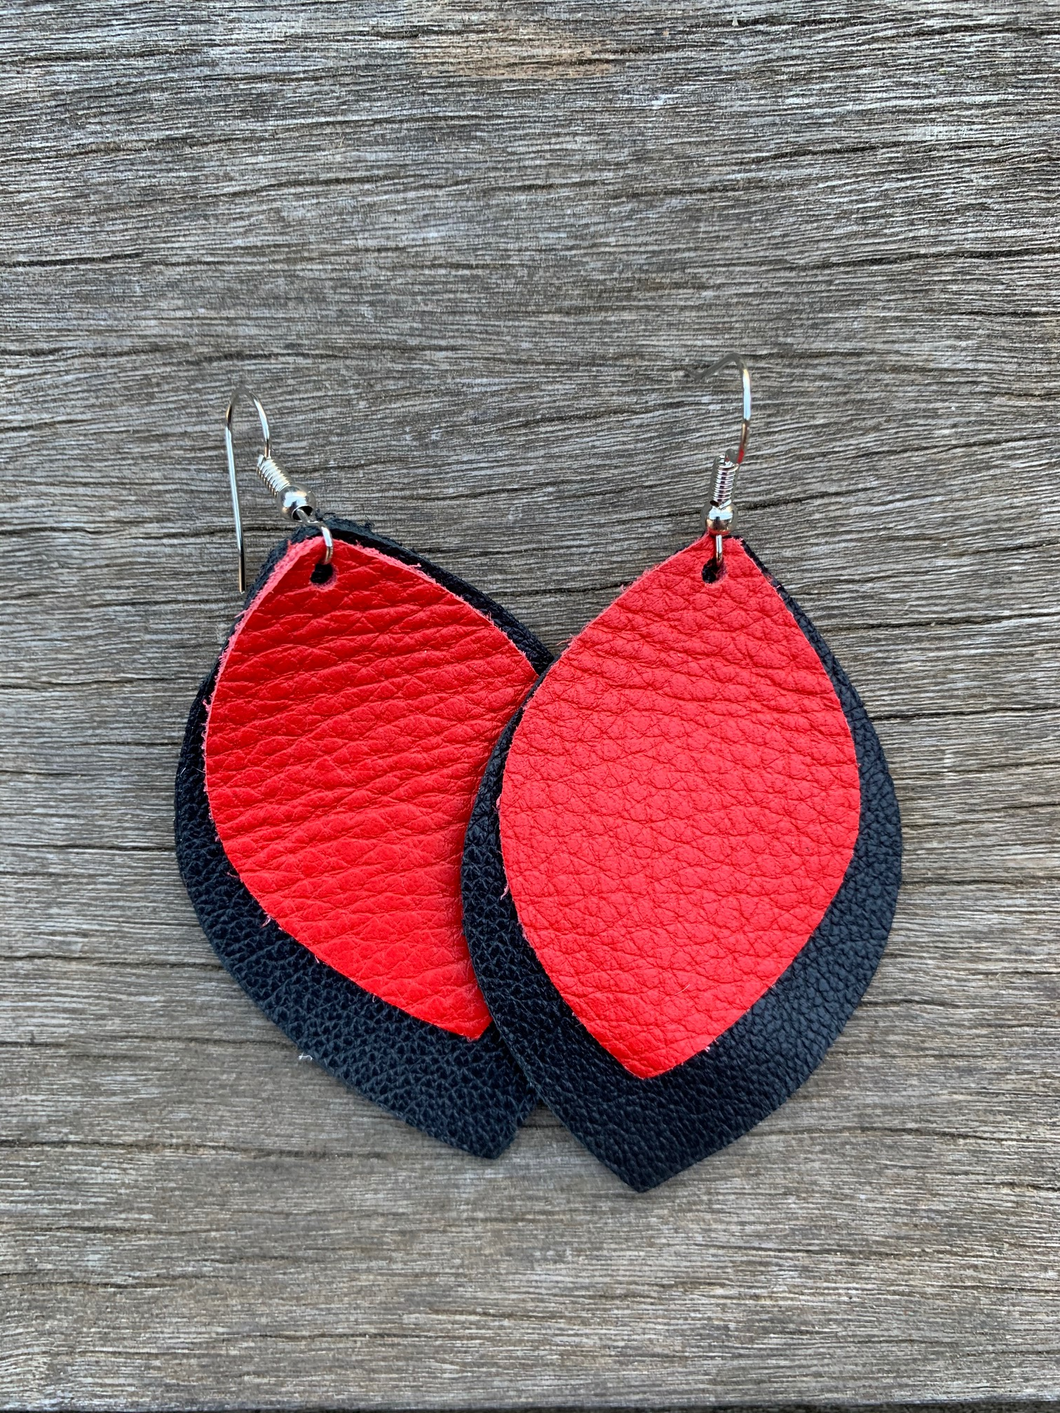 Black & Red Leather Earrings